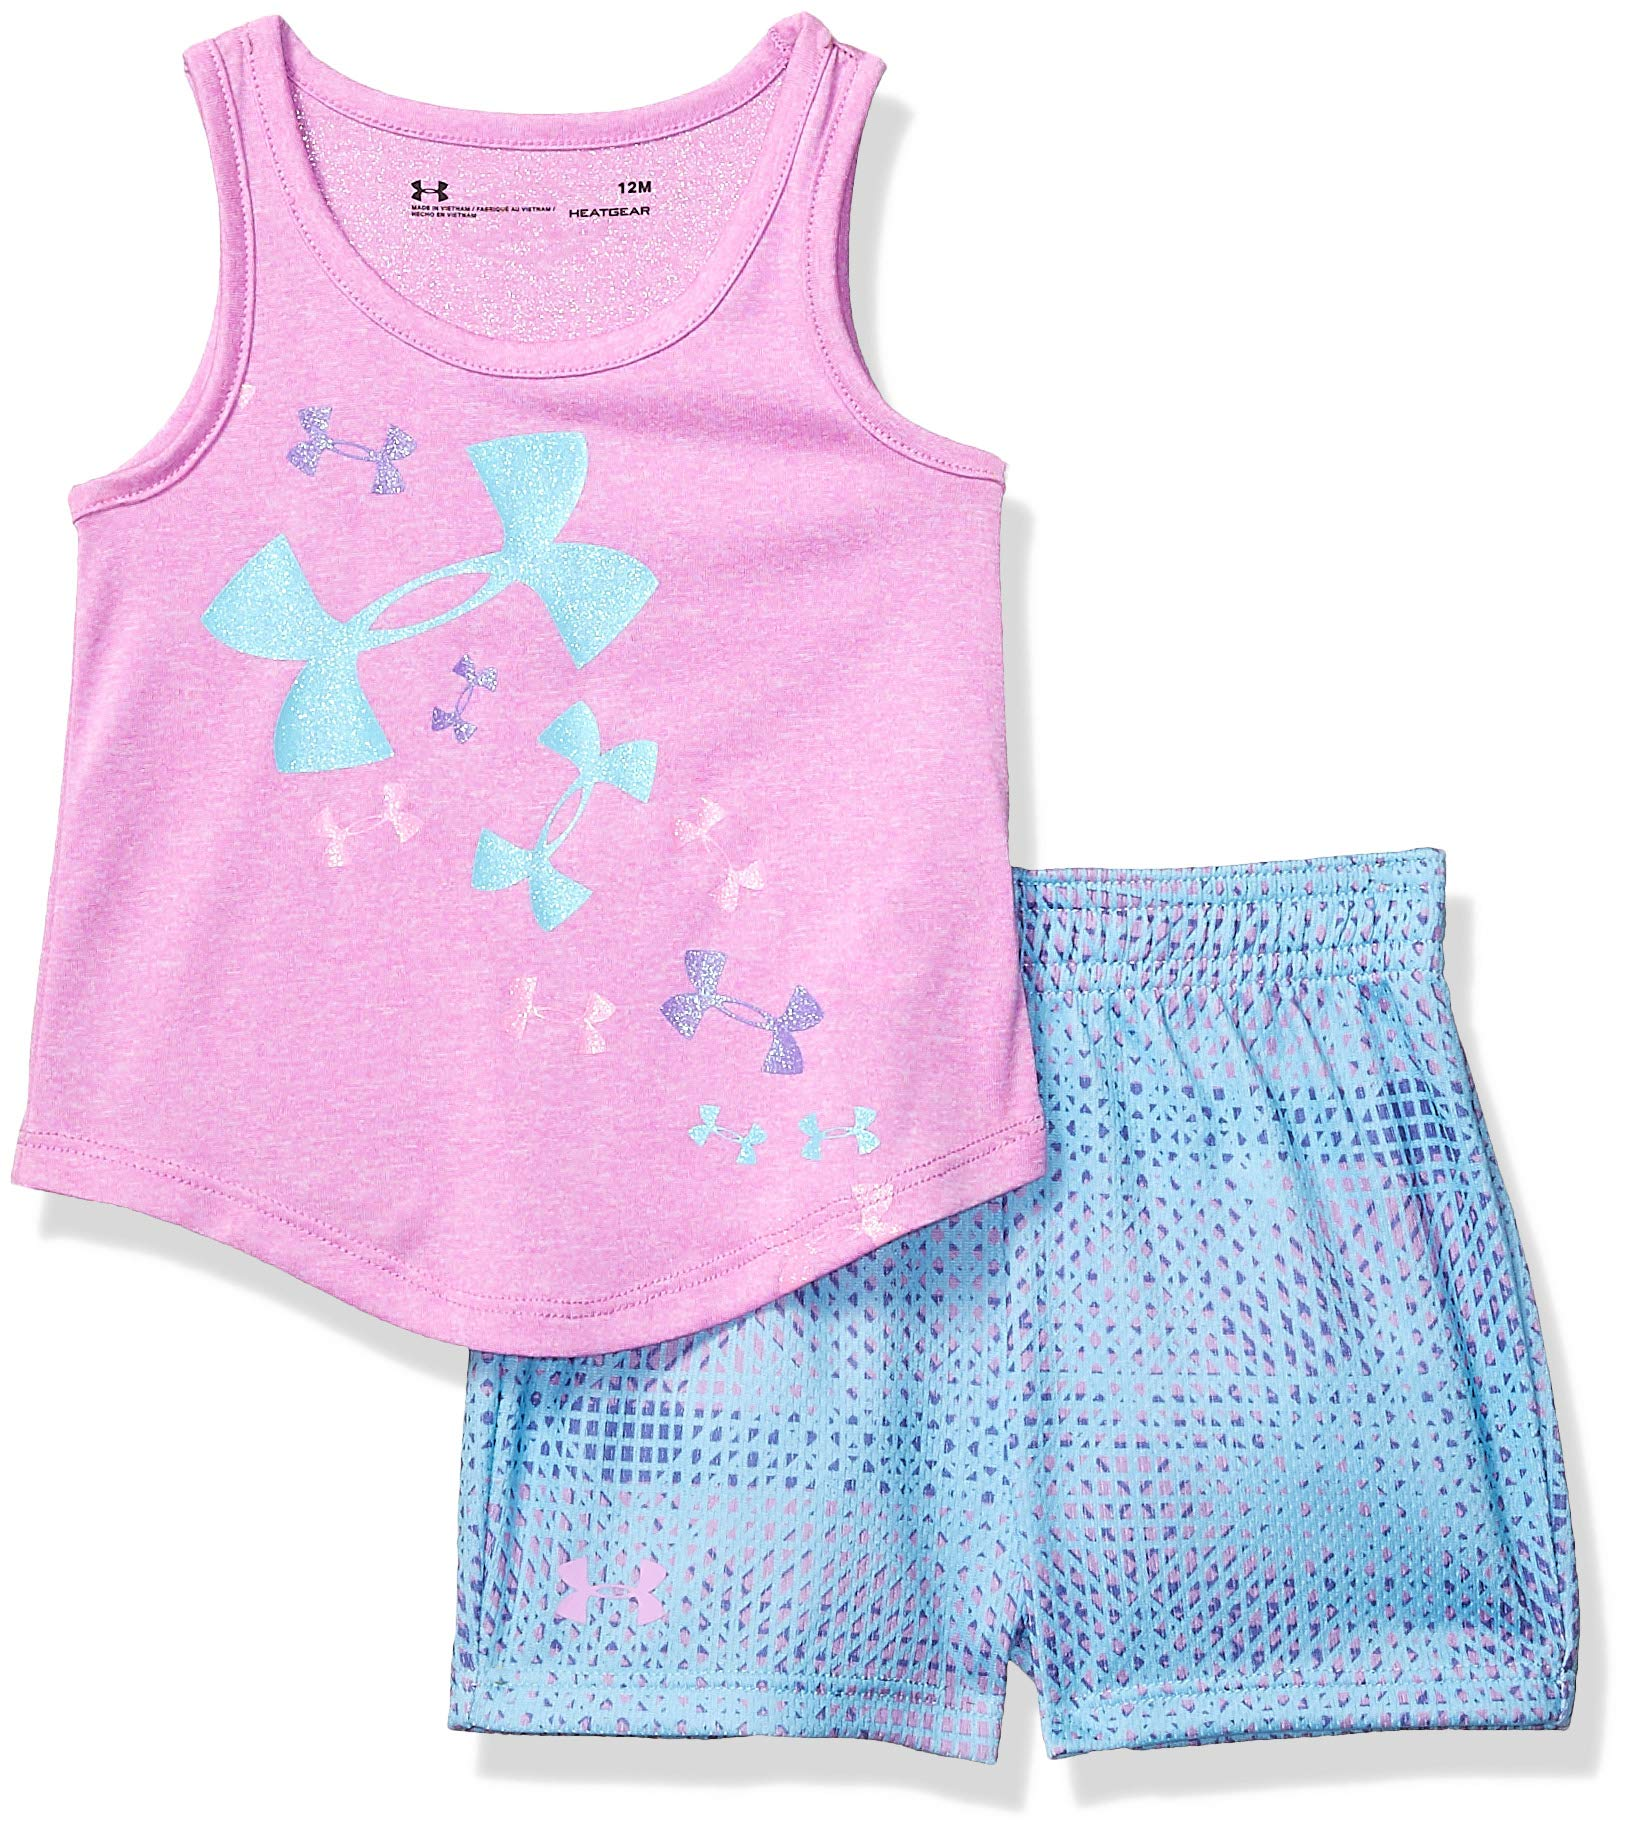 Under Armour Baby Girls UA Tank and Short Set, Verve Violet-S19, 18M by Under Armour